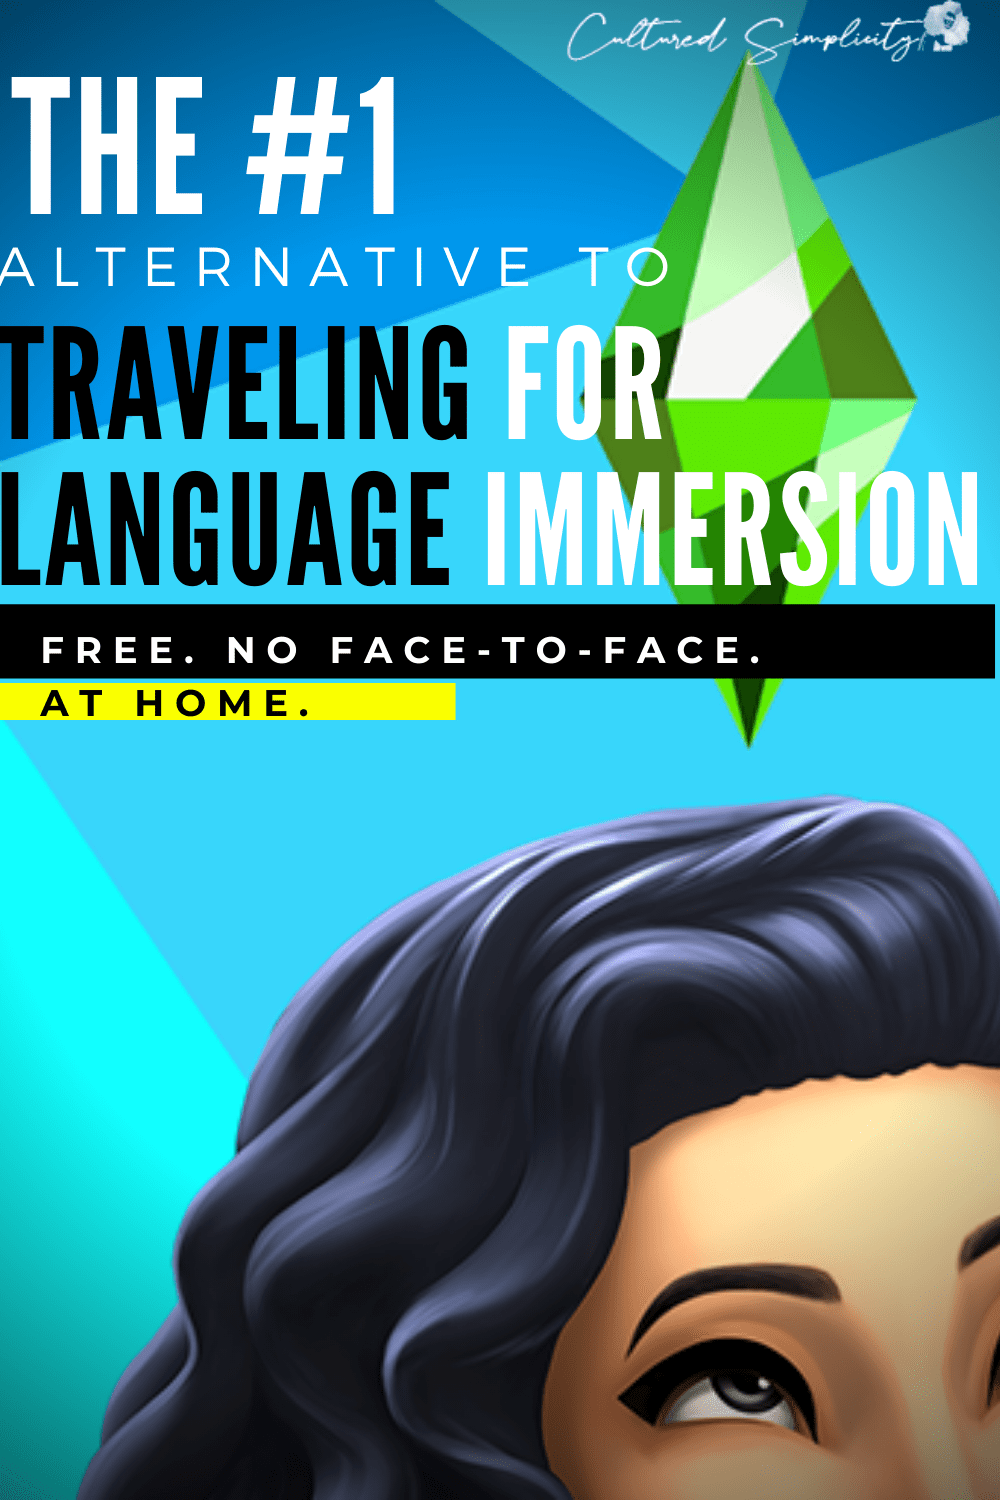 The best alternative to traveling for language immersion